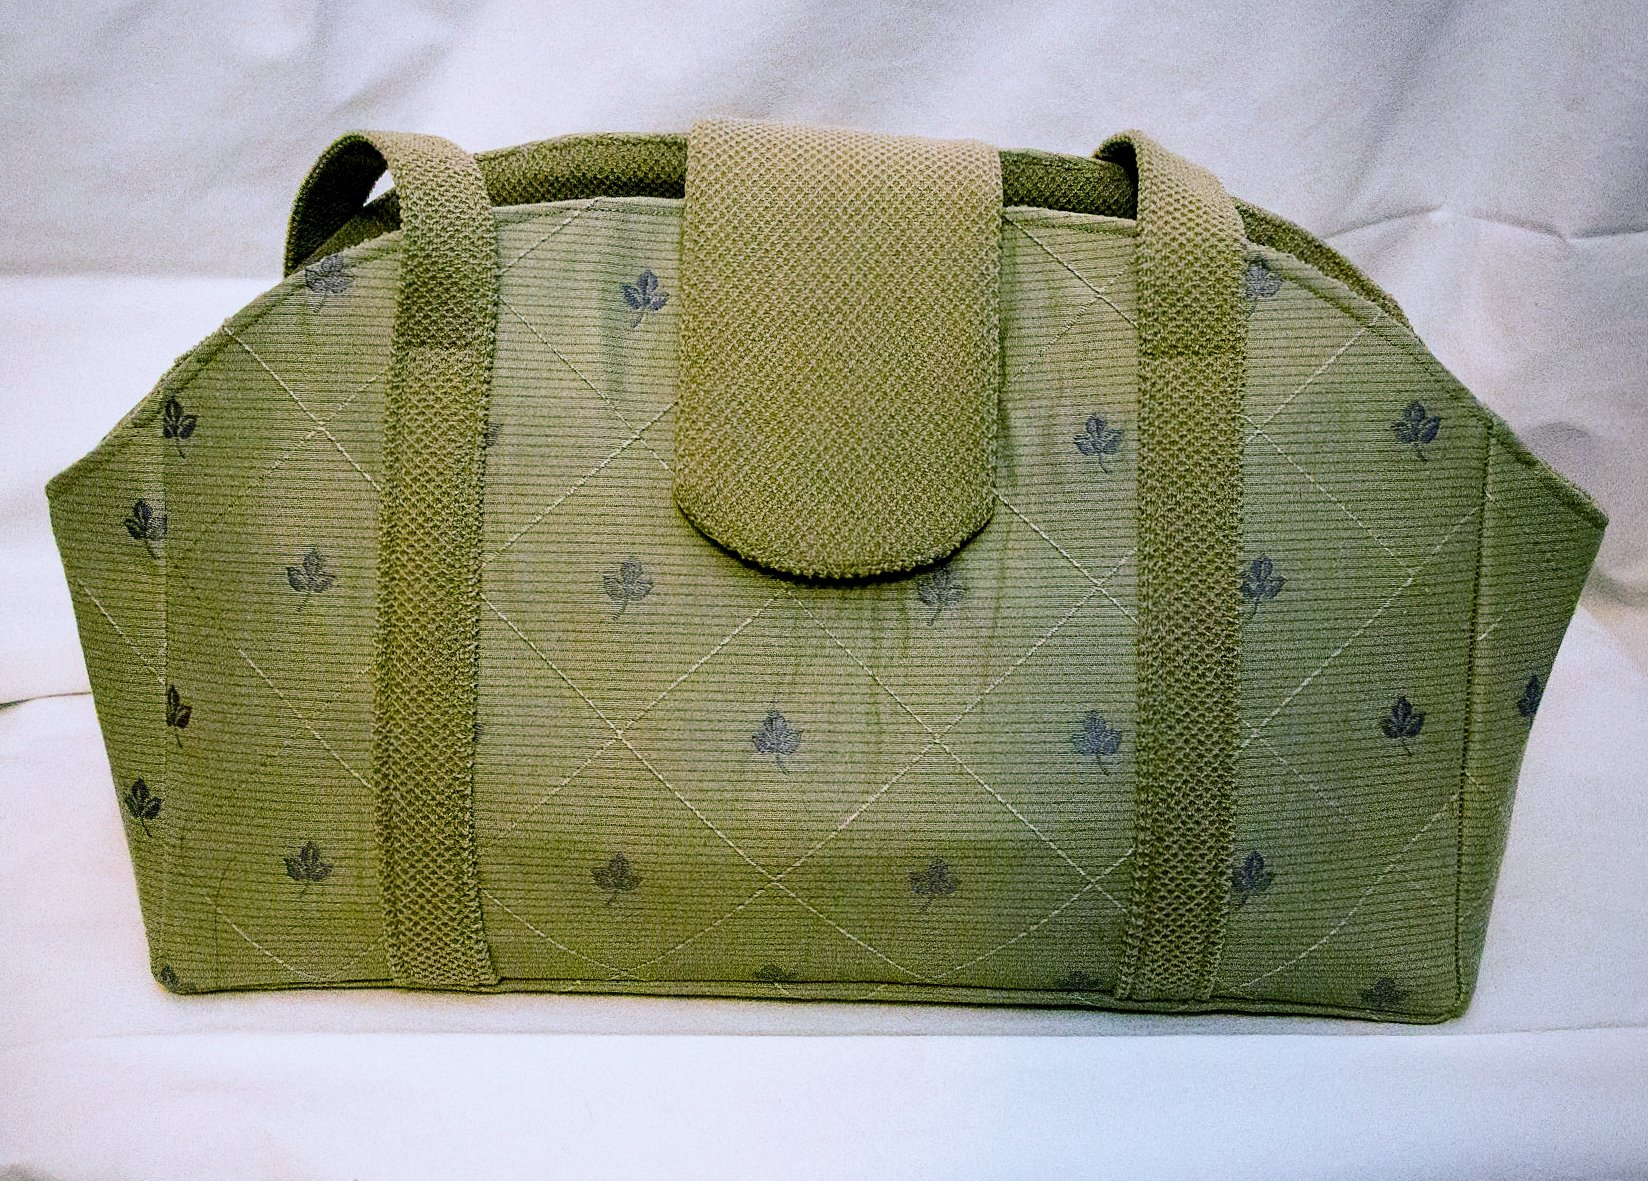 Fall Leaves and Pale Green Pet Purse Carrier by Creatures CoversTM (Image #3)